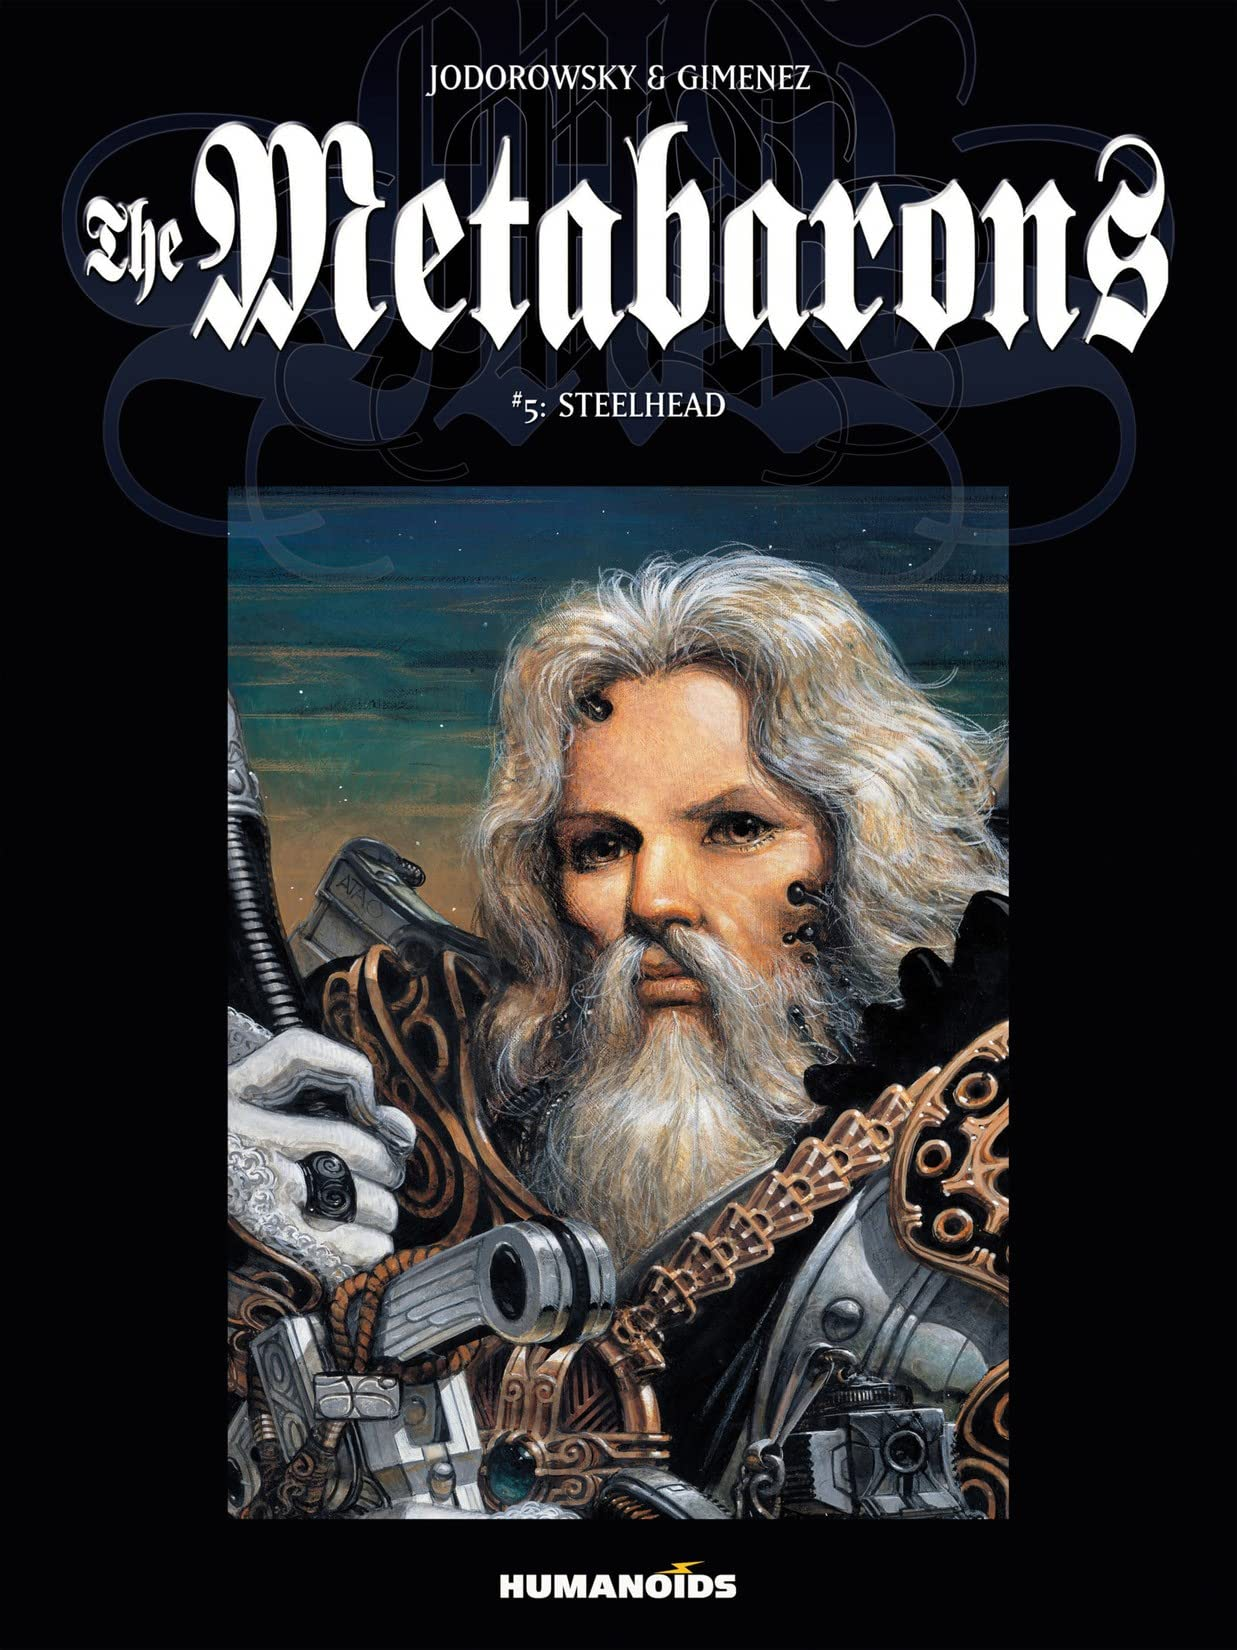 The Metabarons Vol. 5: Steelhead